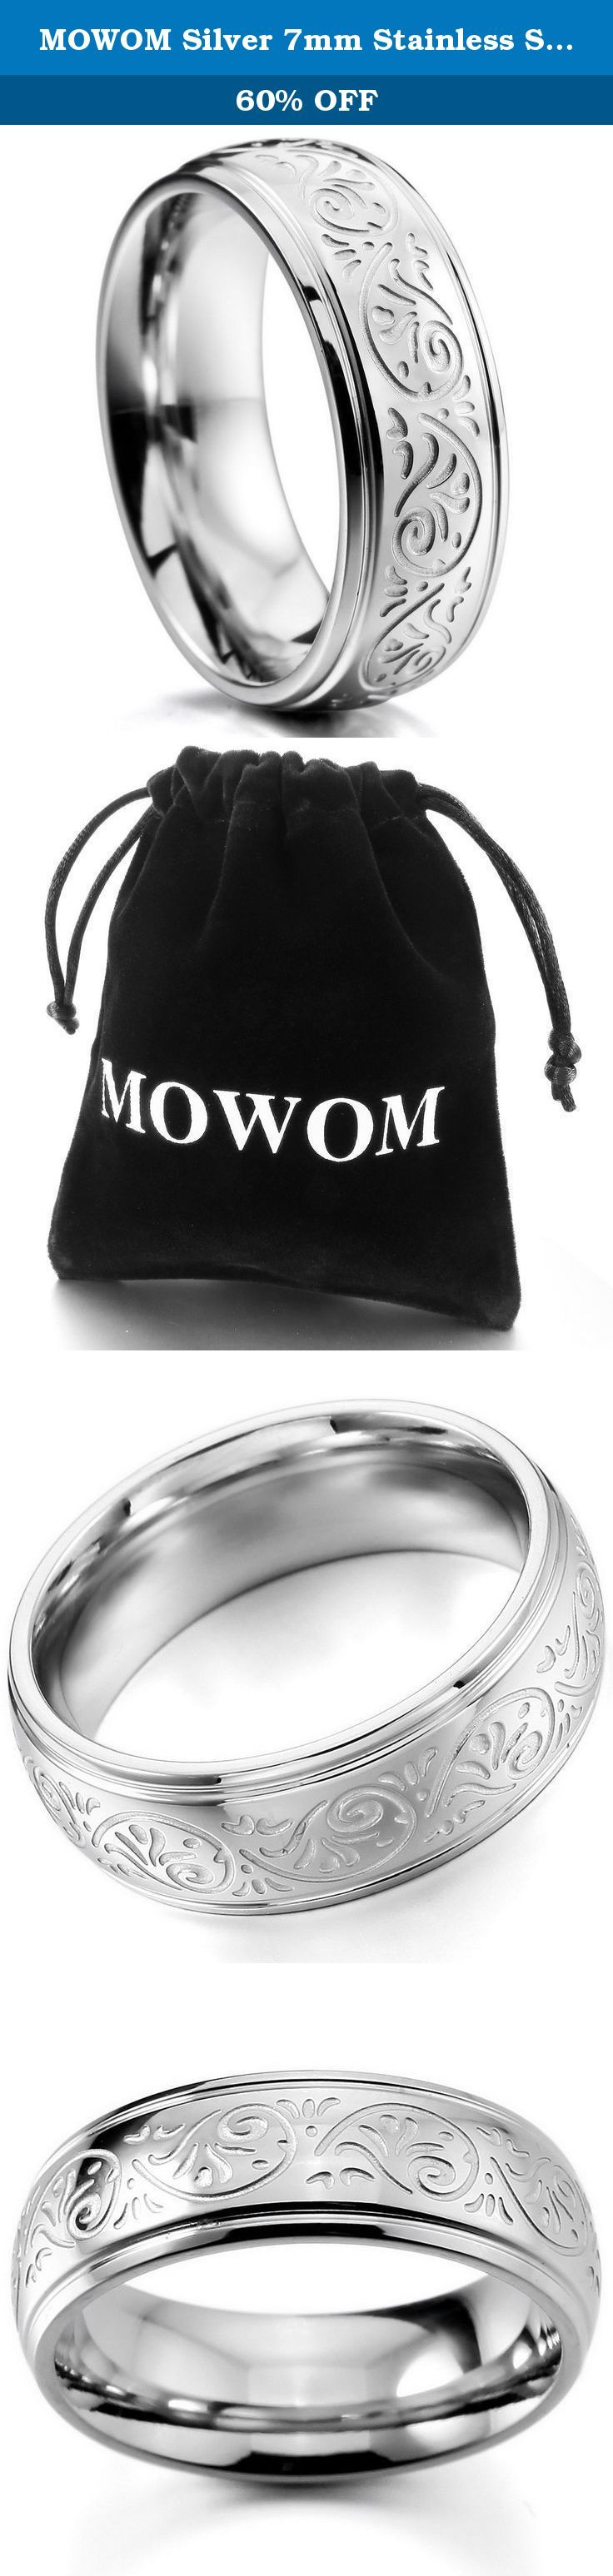 MOWOM Silver 7mm Stainless Steel Ring Band Engraved Florentine Design Size 4 To Size 15 9. Silver 7mm Stainless Steel Ring Band Engraved Florentine Design Size 4 To Size 15.